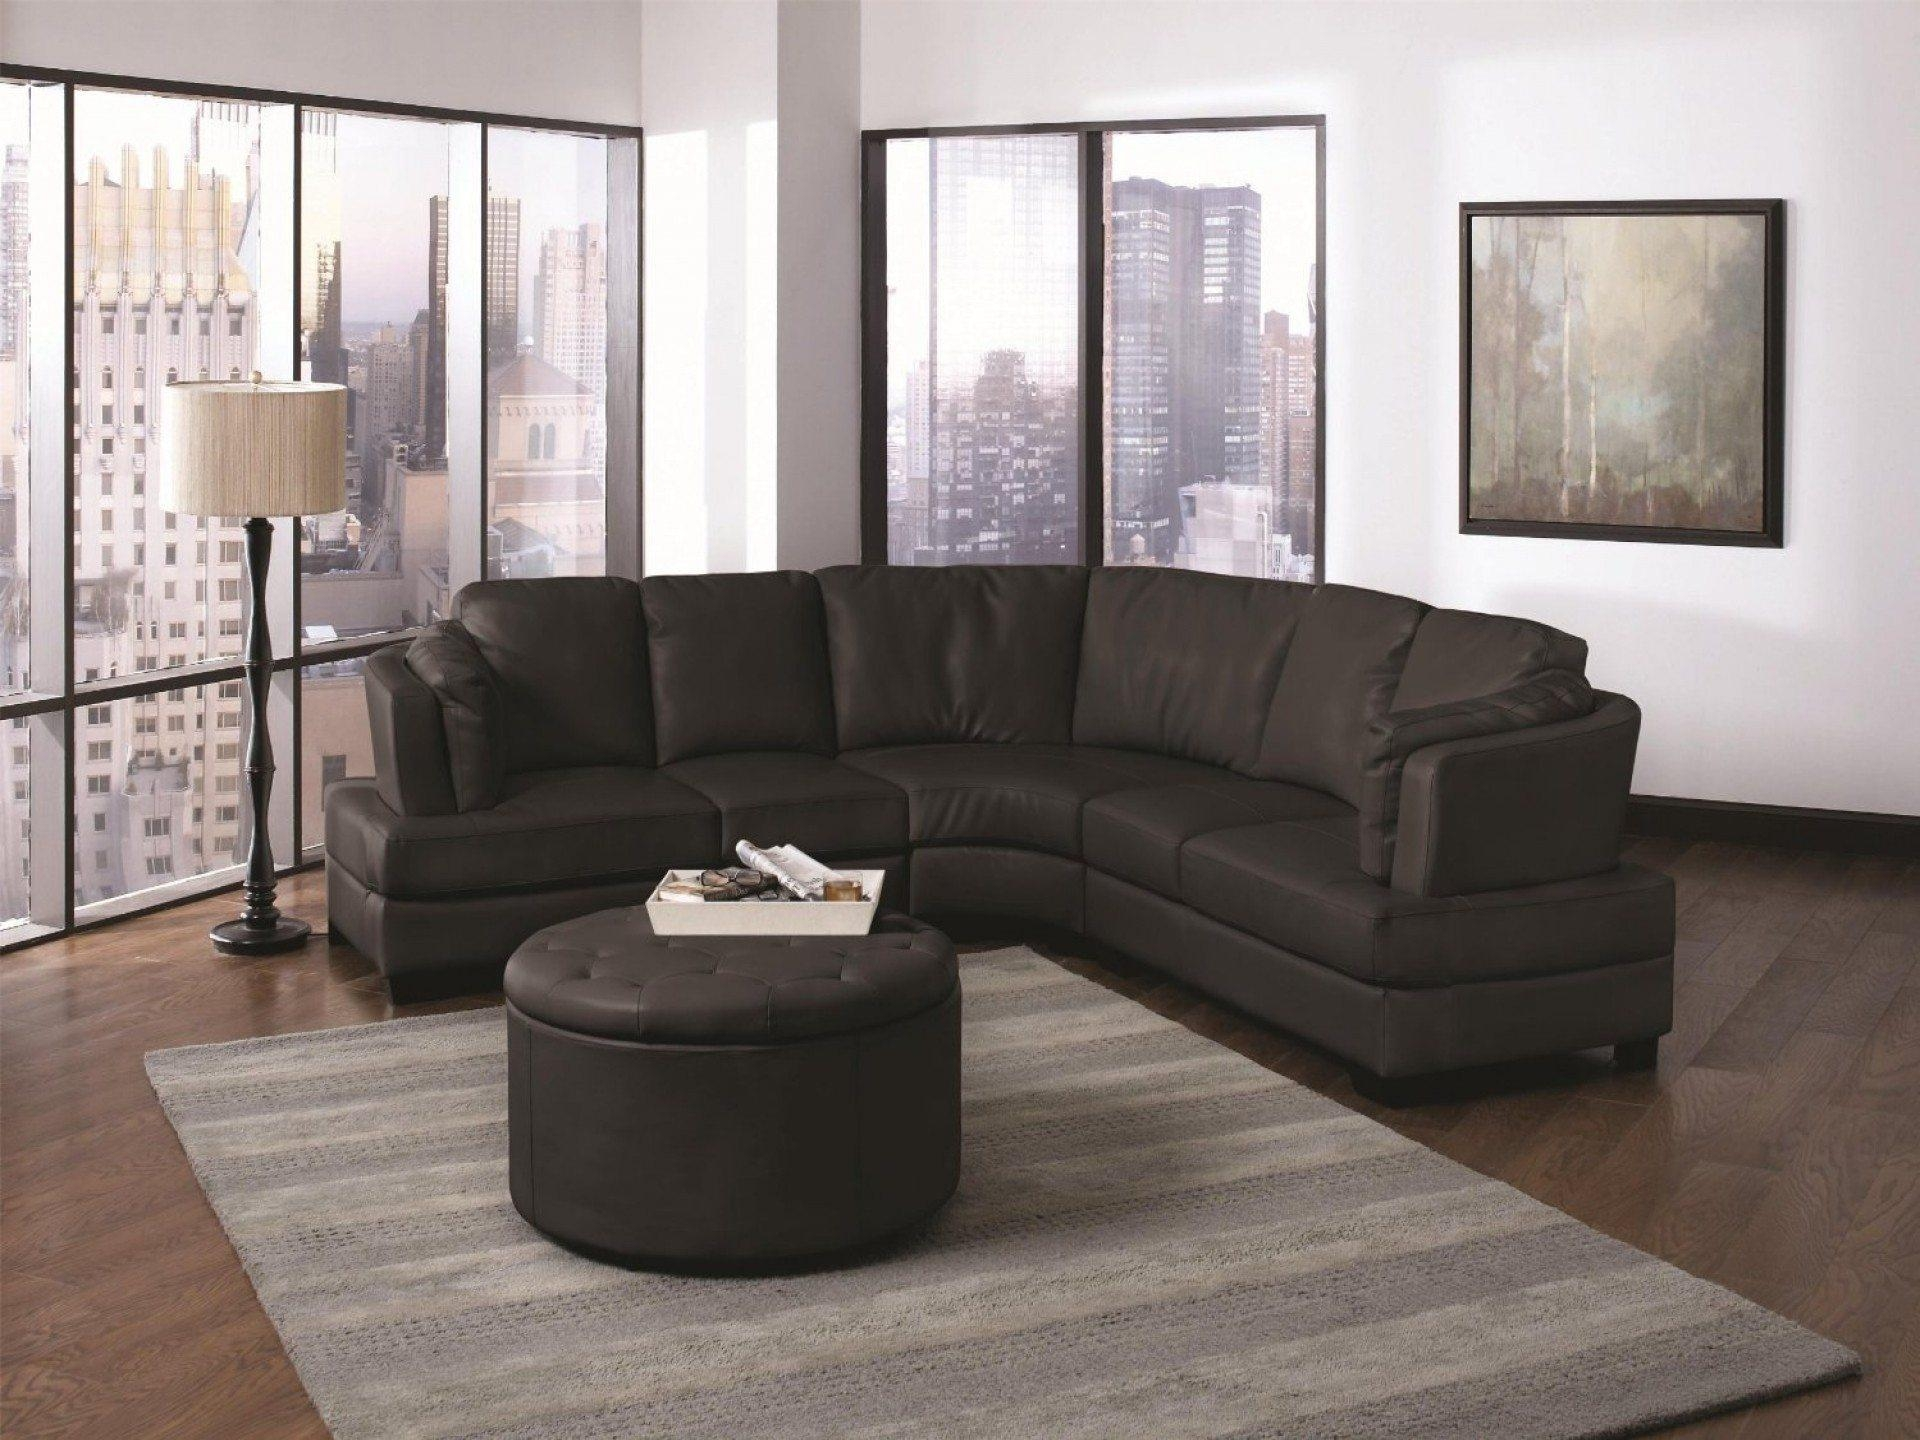 Small 2 Piece Sectional Sofa | Sofa Gallery | Kengire Inside Small 2 Piece Sectional (Image 17 of 20)